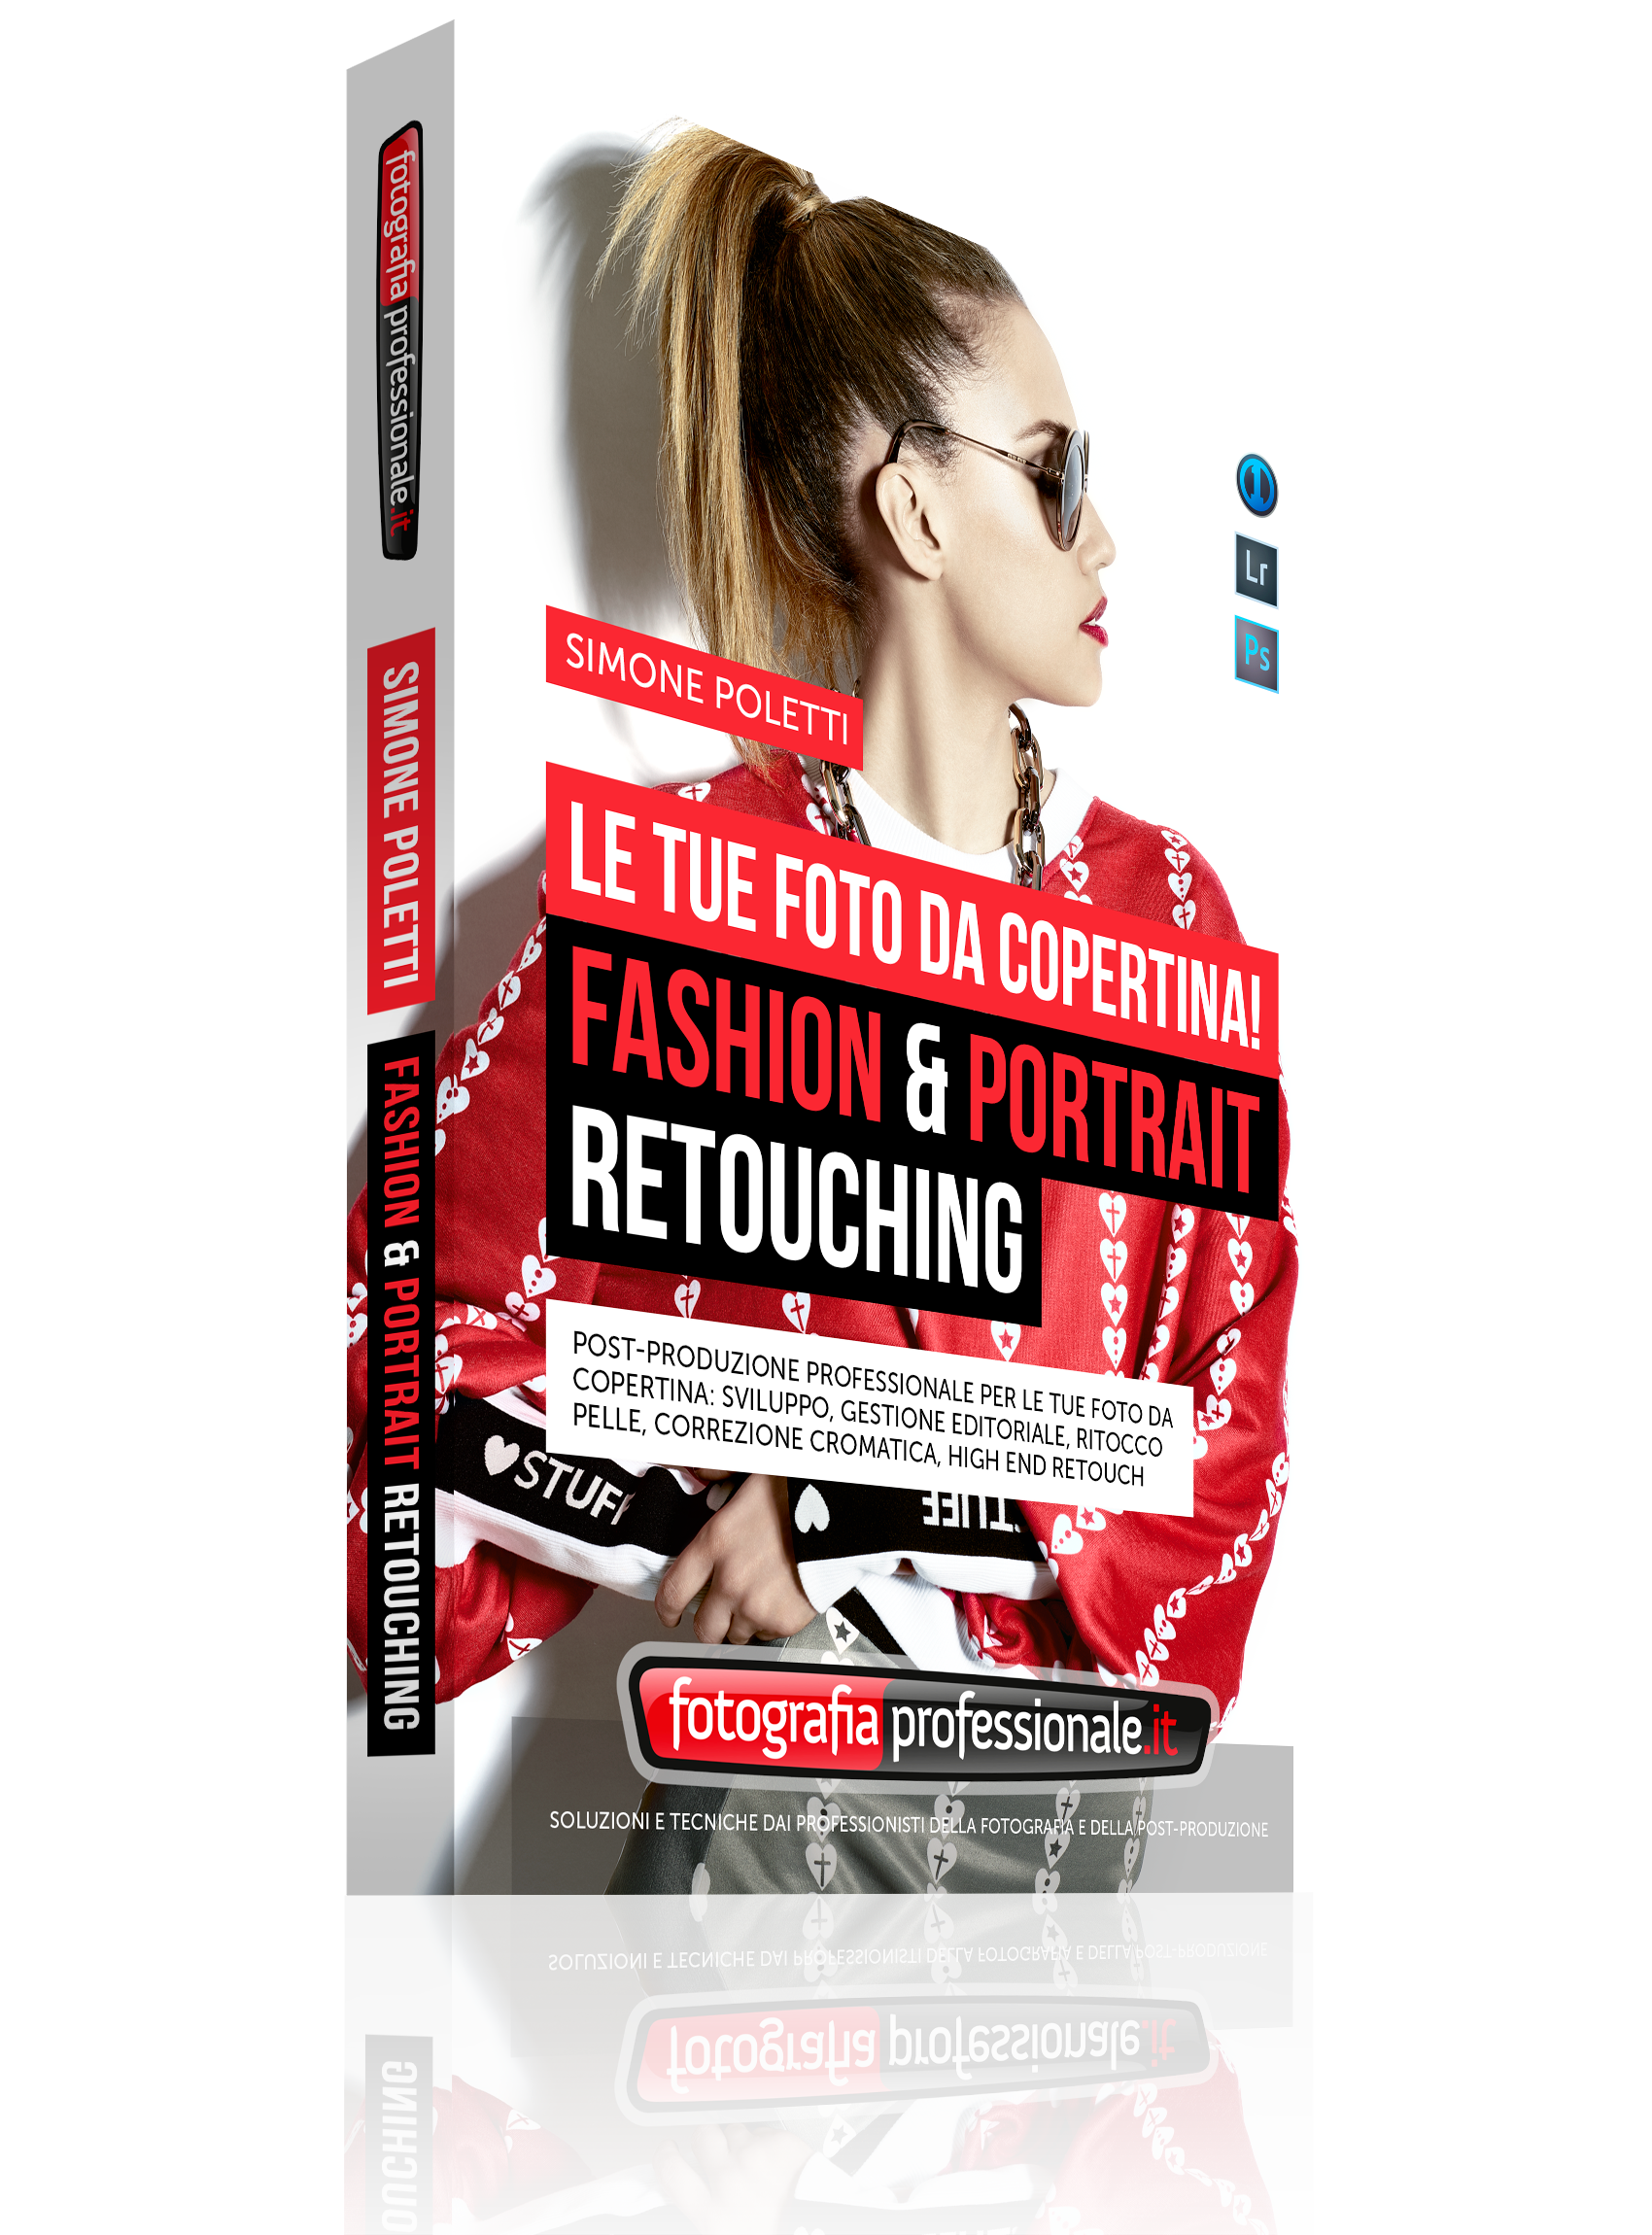 Fashion & Portrait Retouching